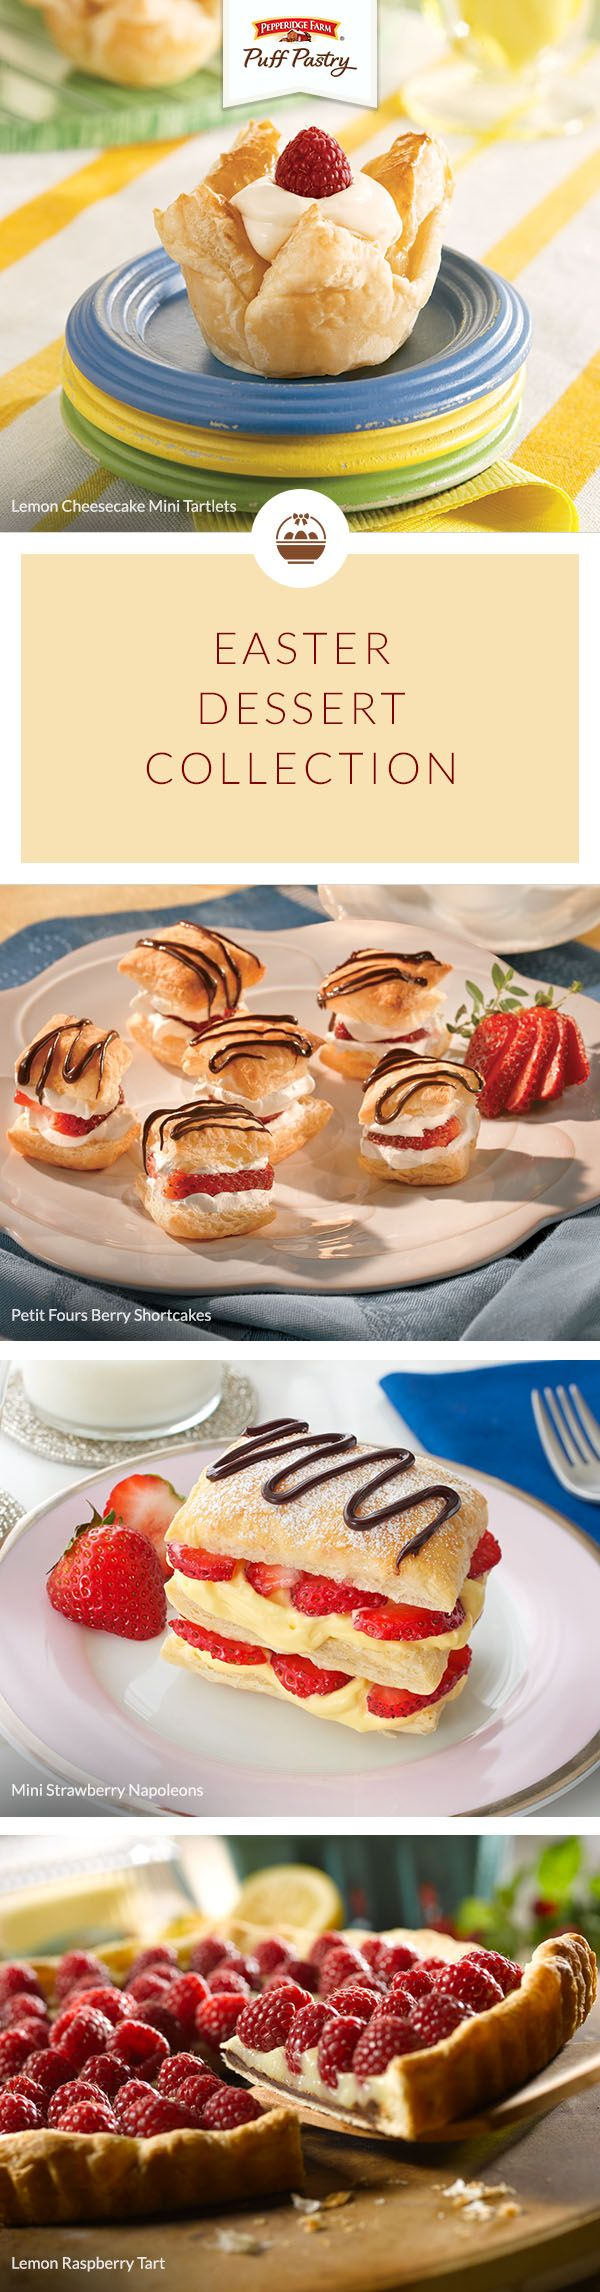 Pepperidge Farm Puff Pastry Easter Dessert Recipe Collection. Whether you're hosting a simple brunch or an afternoon feast, get inspired with this list of our favorite Easter Desserts. Featuring bright spring ingredients and seasonal flavors in recipes like lush Lemon Cheesecake Tarts, sweet Strawberry Napoleons or Lemon Raspberry Tarts. Make sure to bring a basket of these treats to the table!